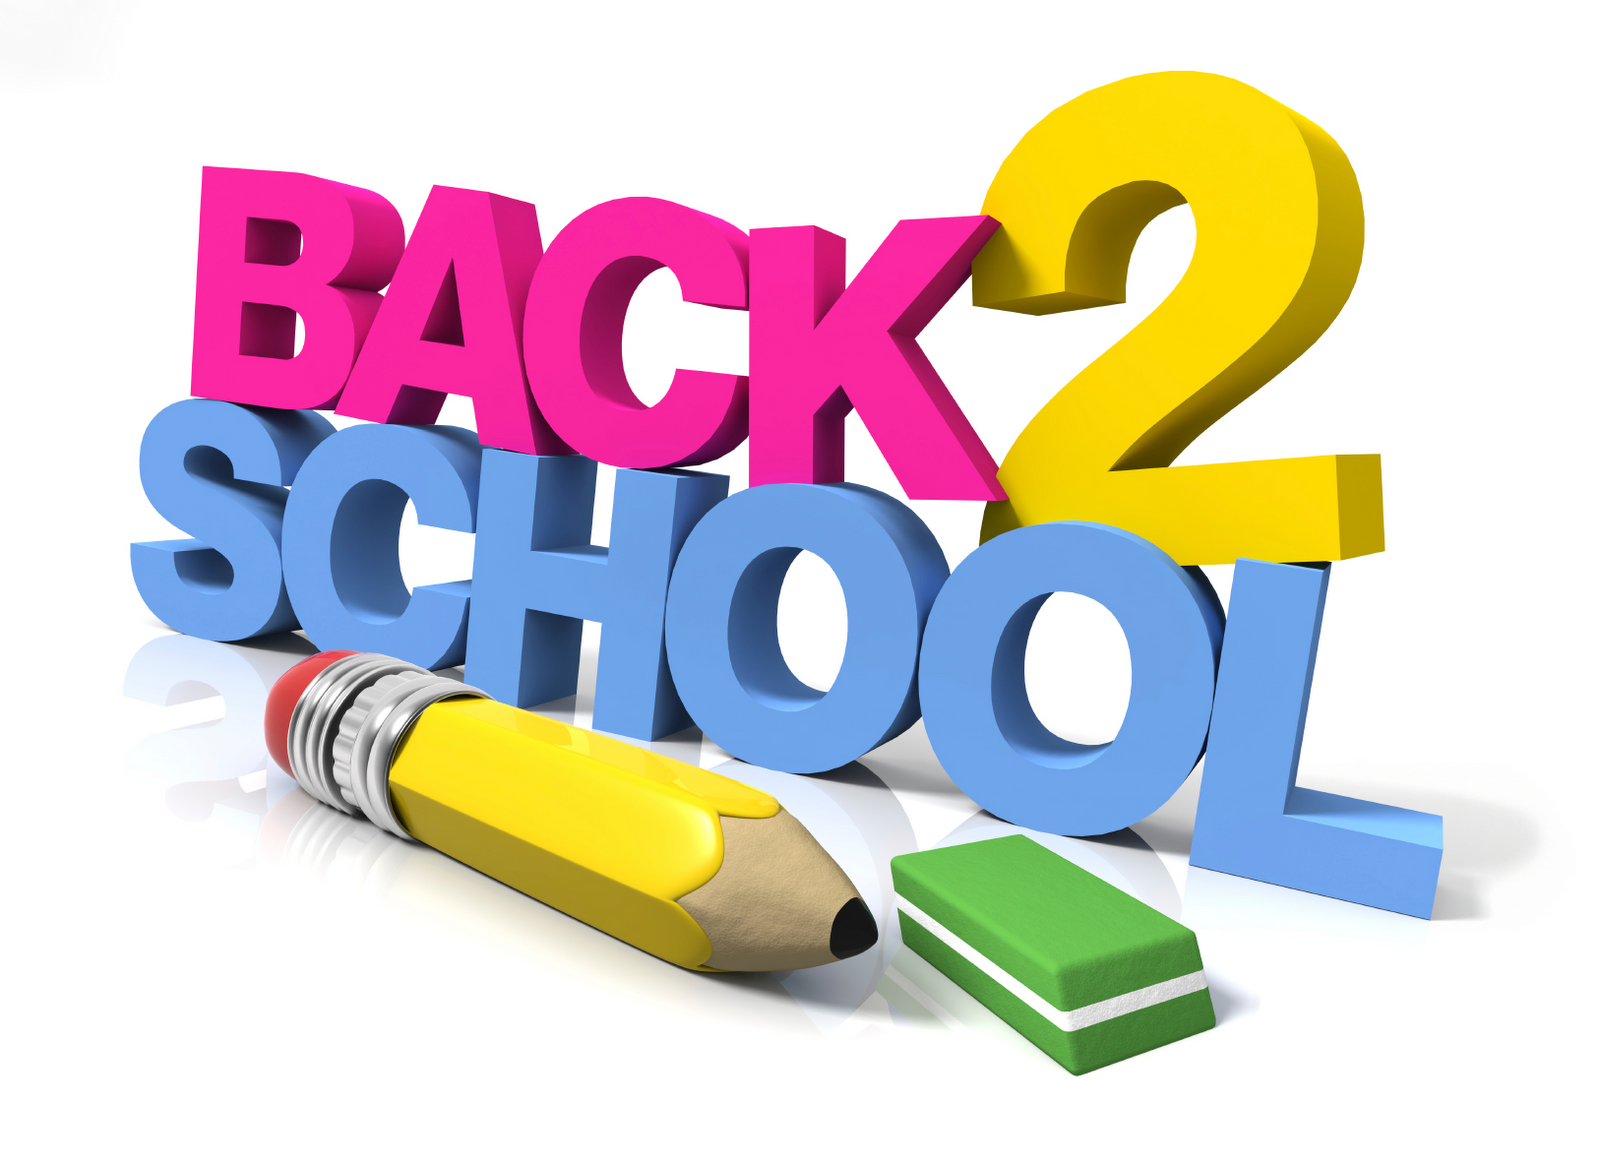 Back To School Png image #23363